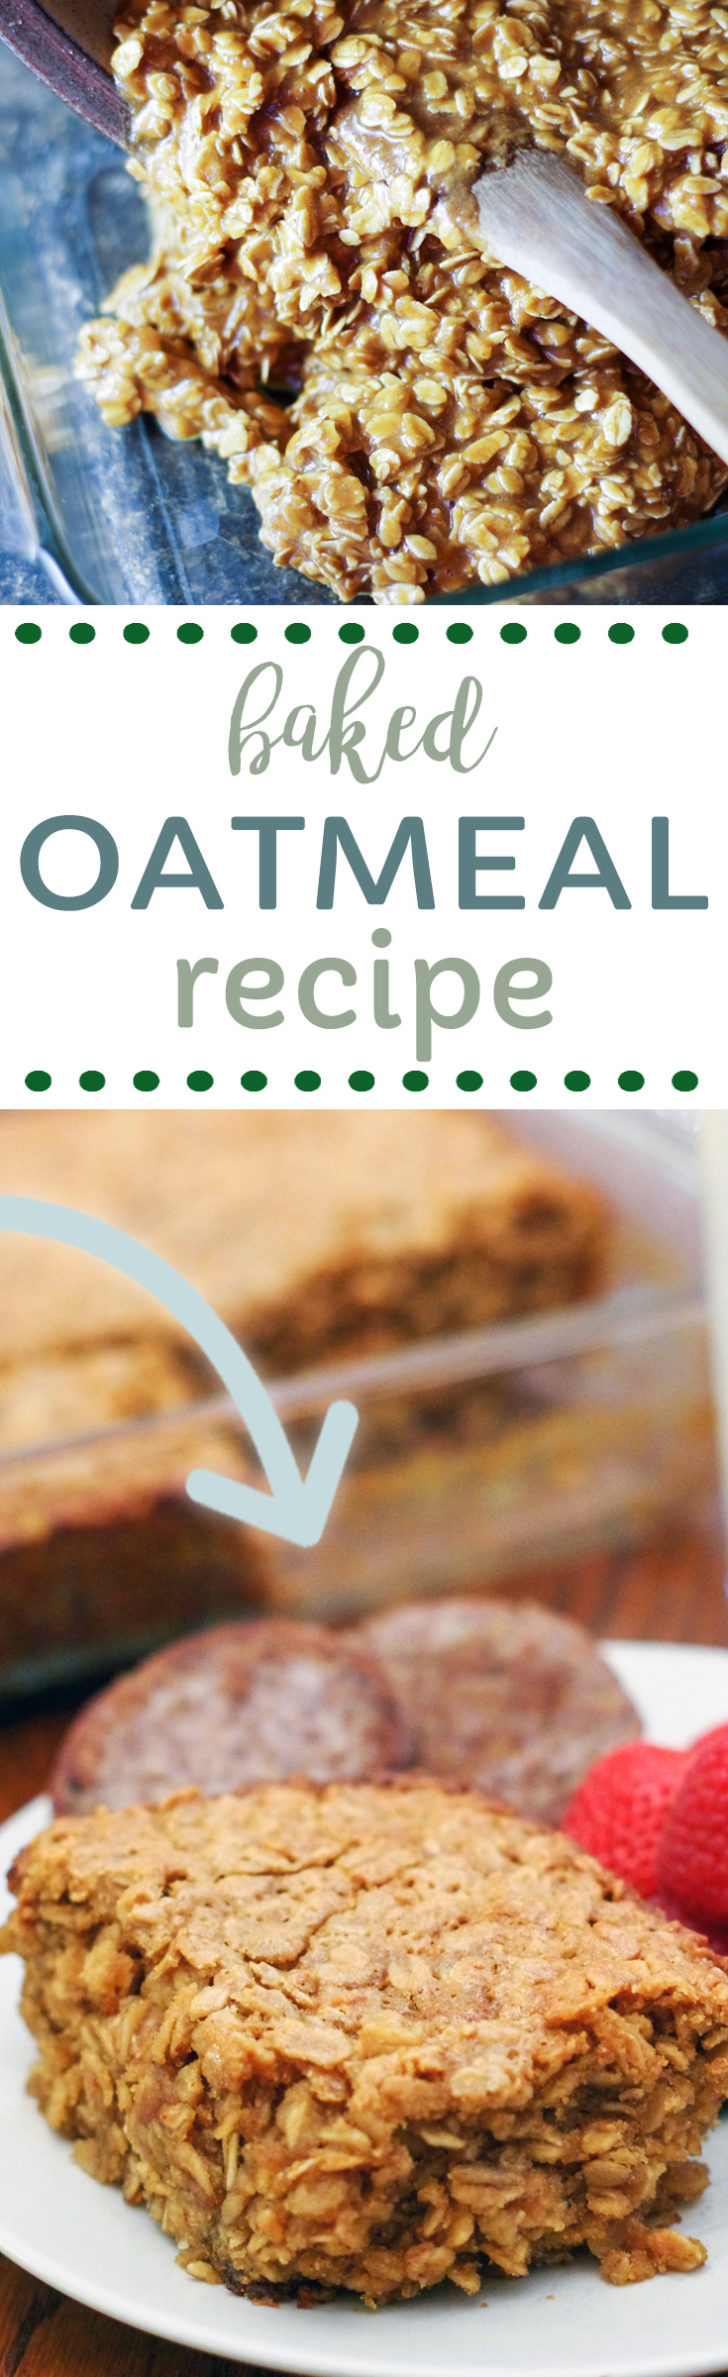 The best easy baked oatmeal recipe